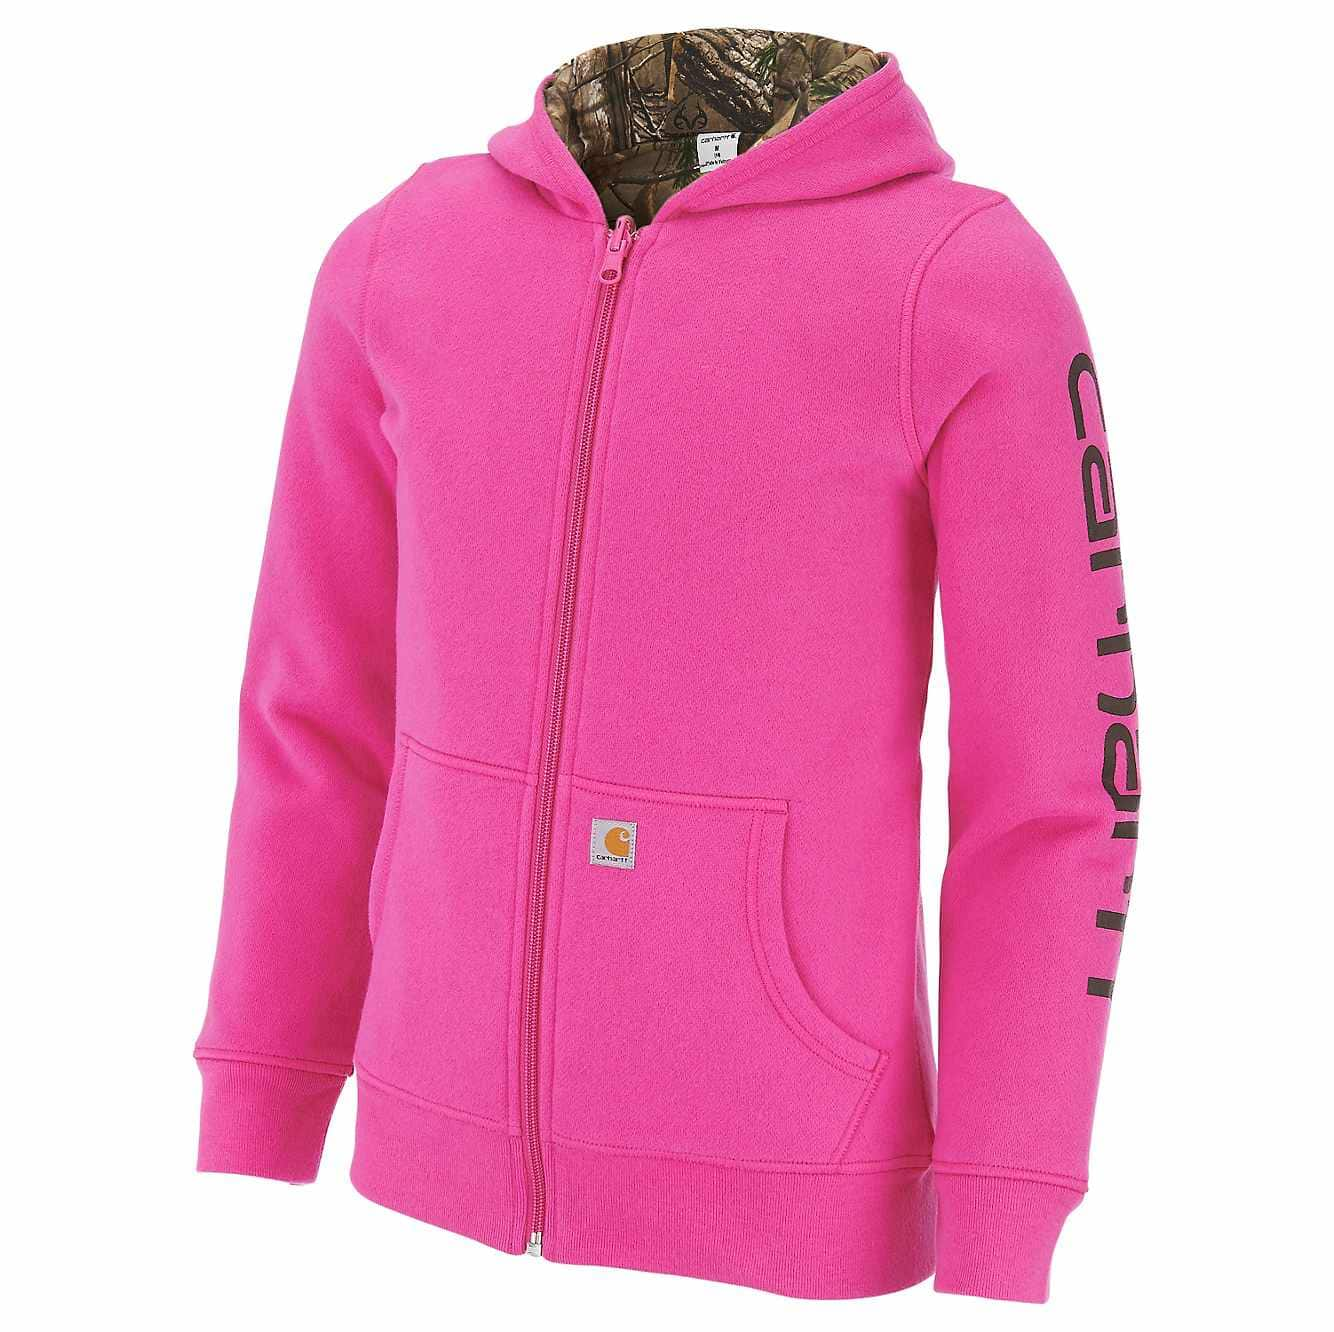 Picture of Realtree Xtra® Reversible Zip Front Hoodie in Raspberry